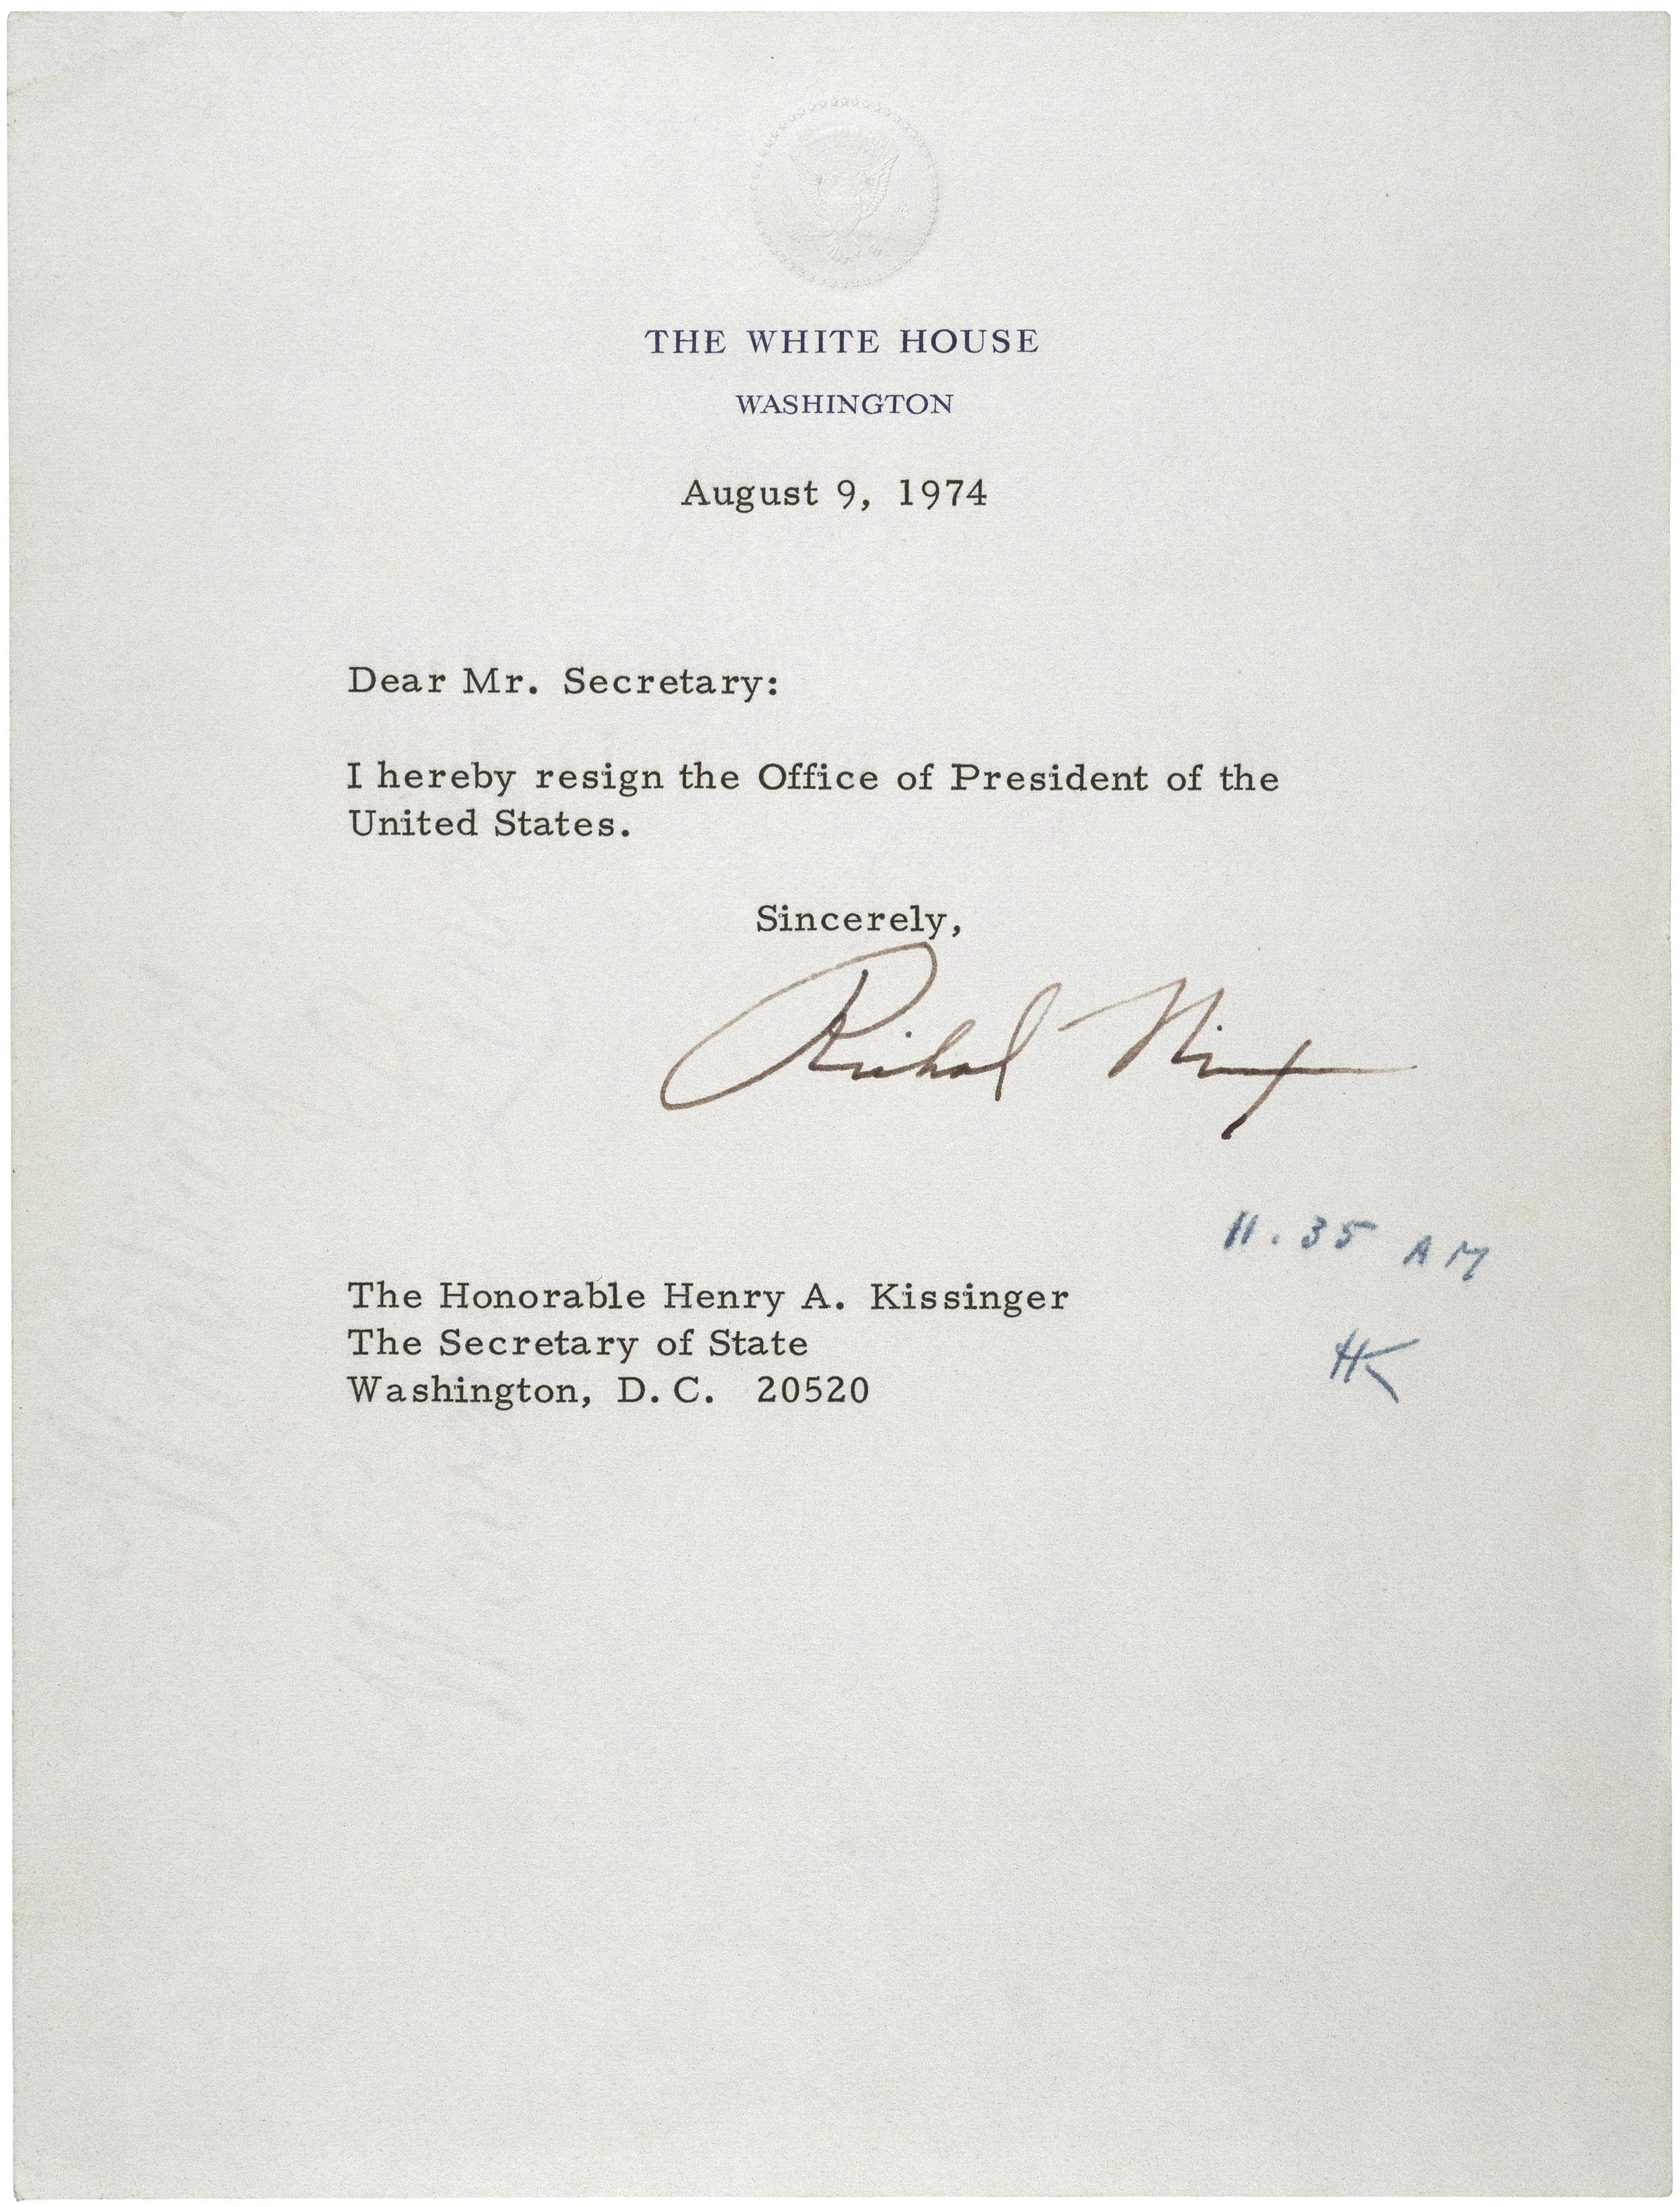 Fileletter Of Resignation Of Richard M Nixon  Jpg